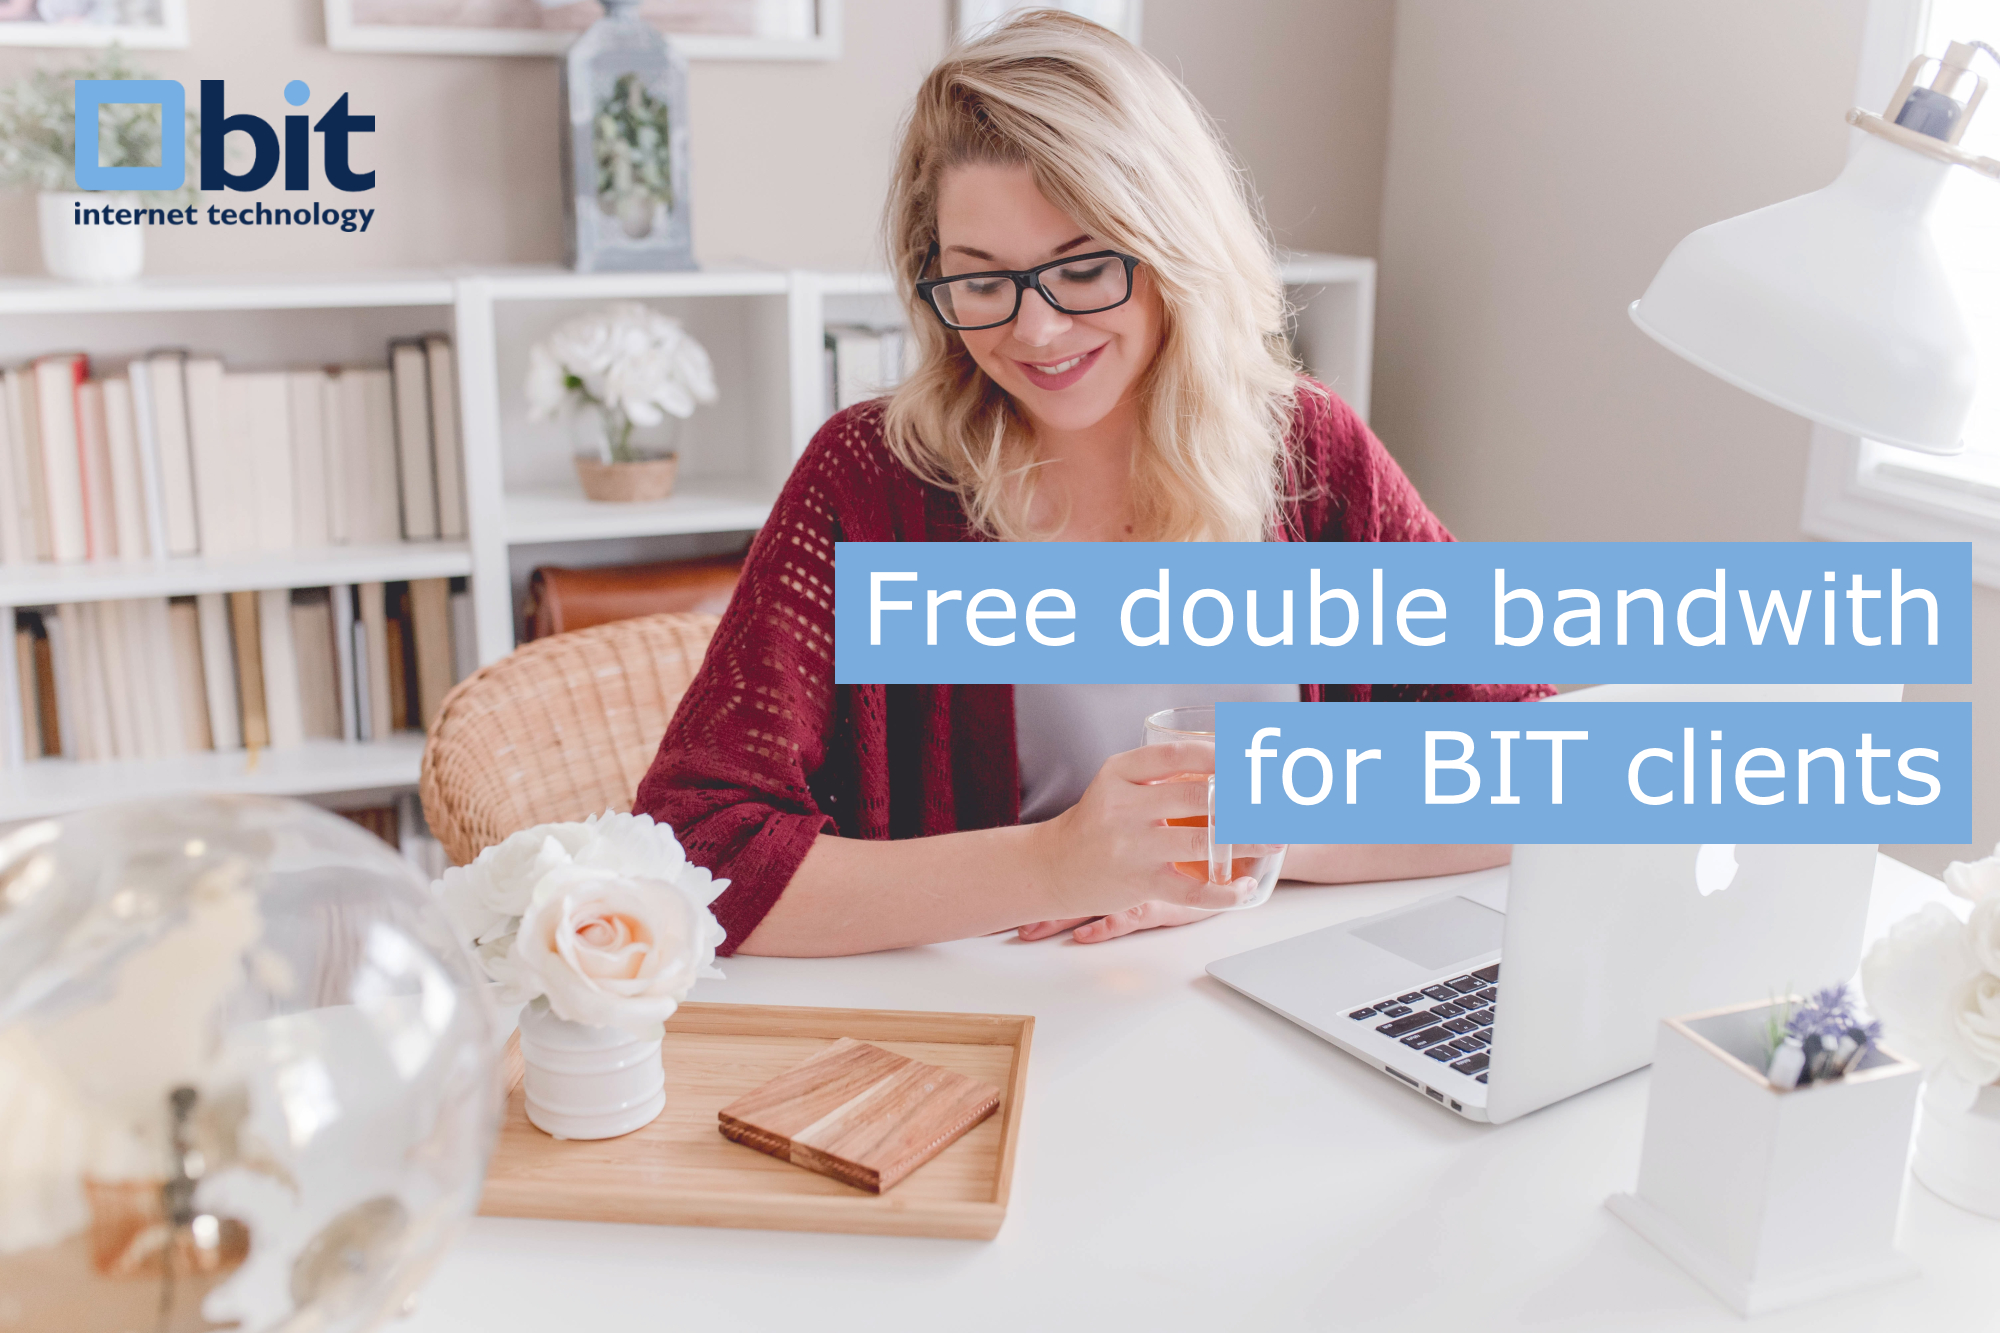 Double bandwith free of charge